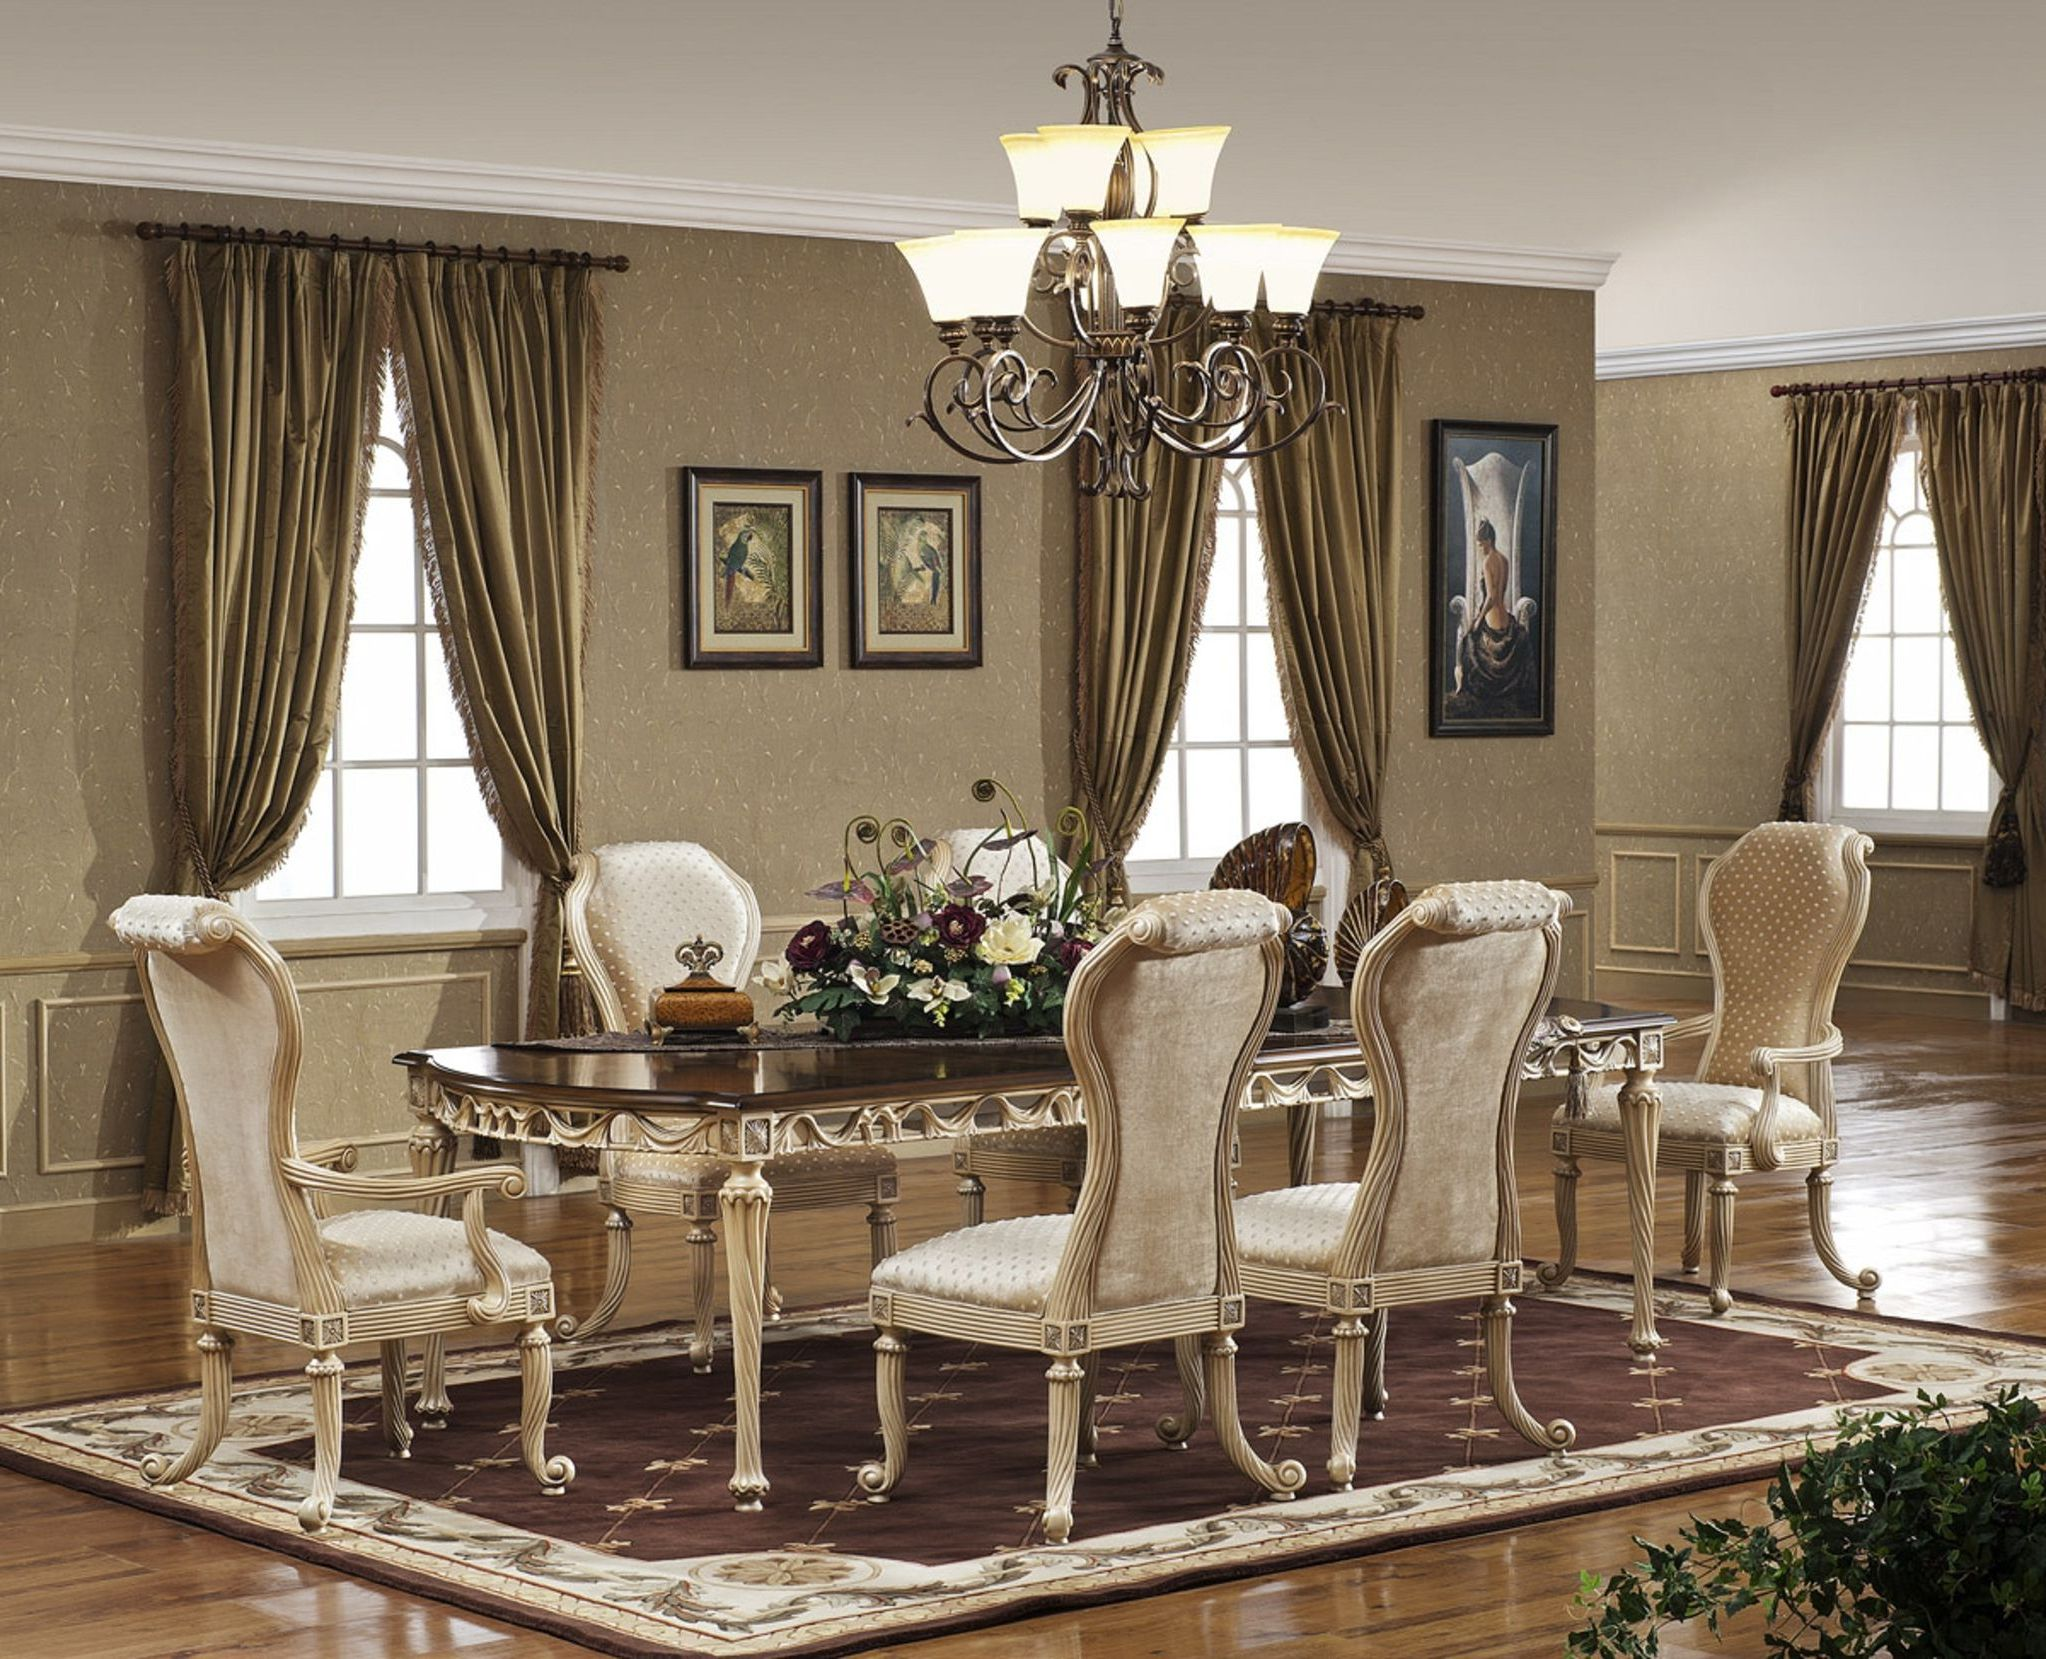 Dining room table and chairs ideas with images for Dining table in living room pictures